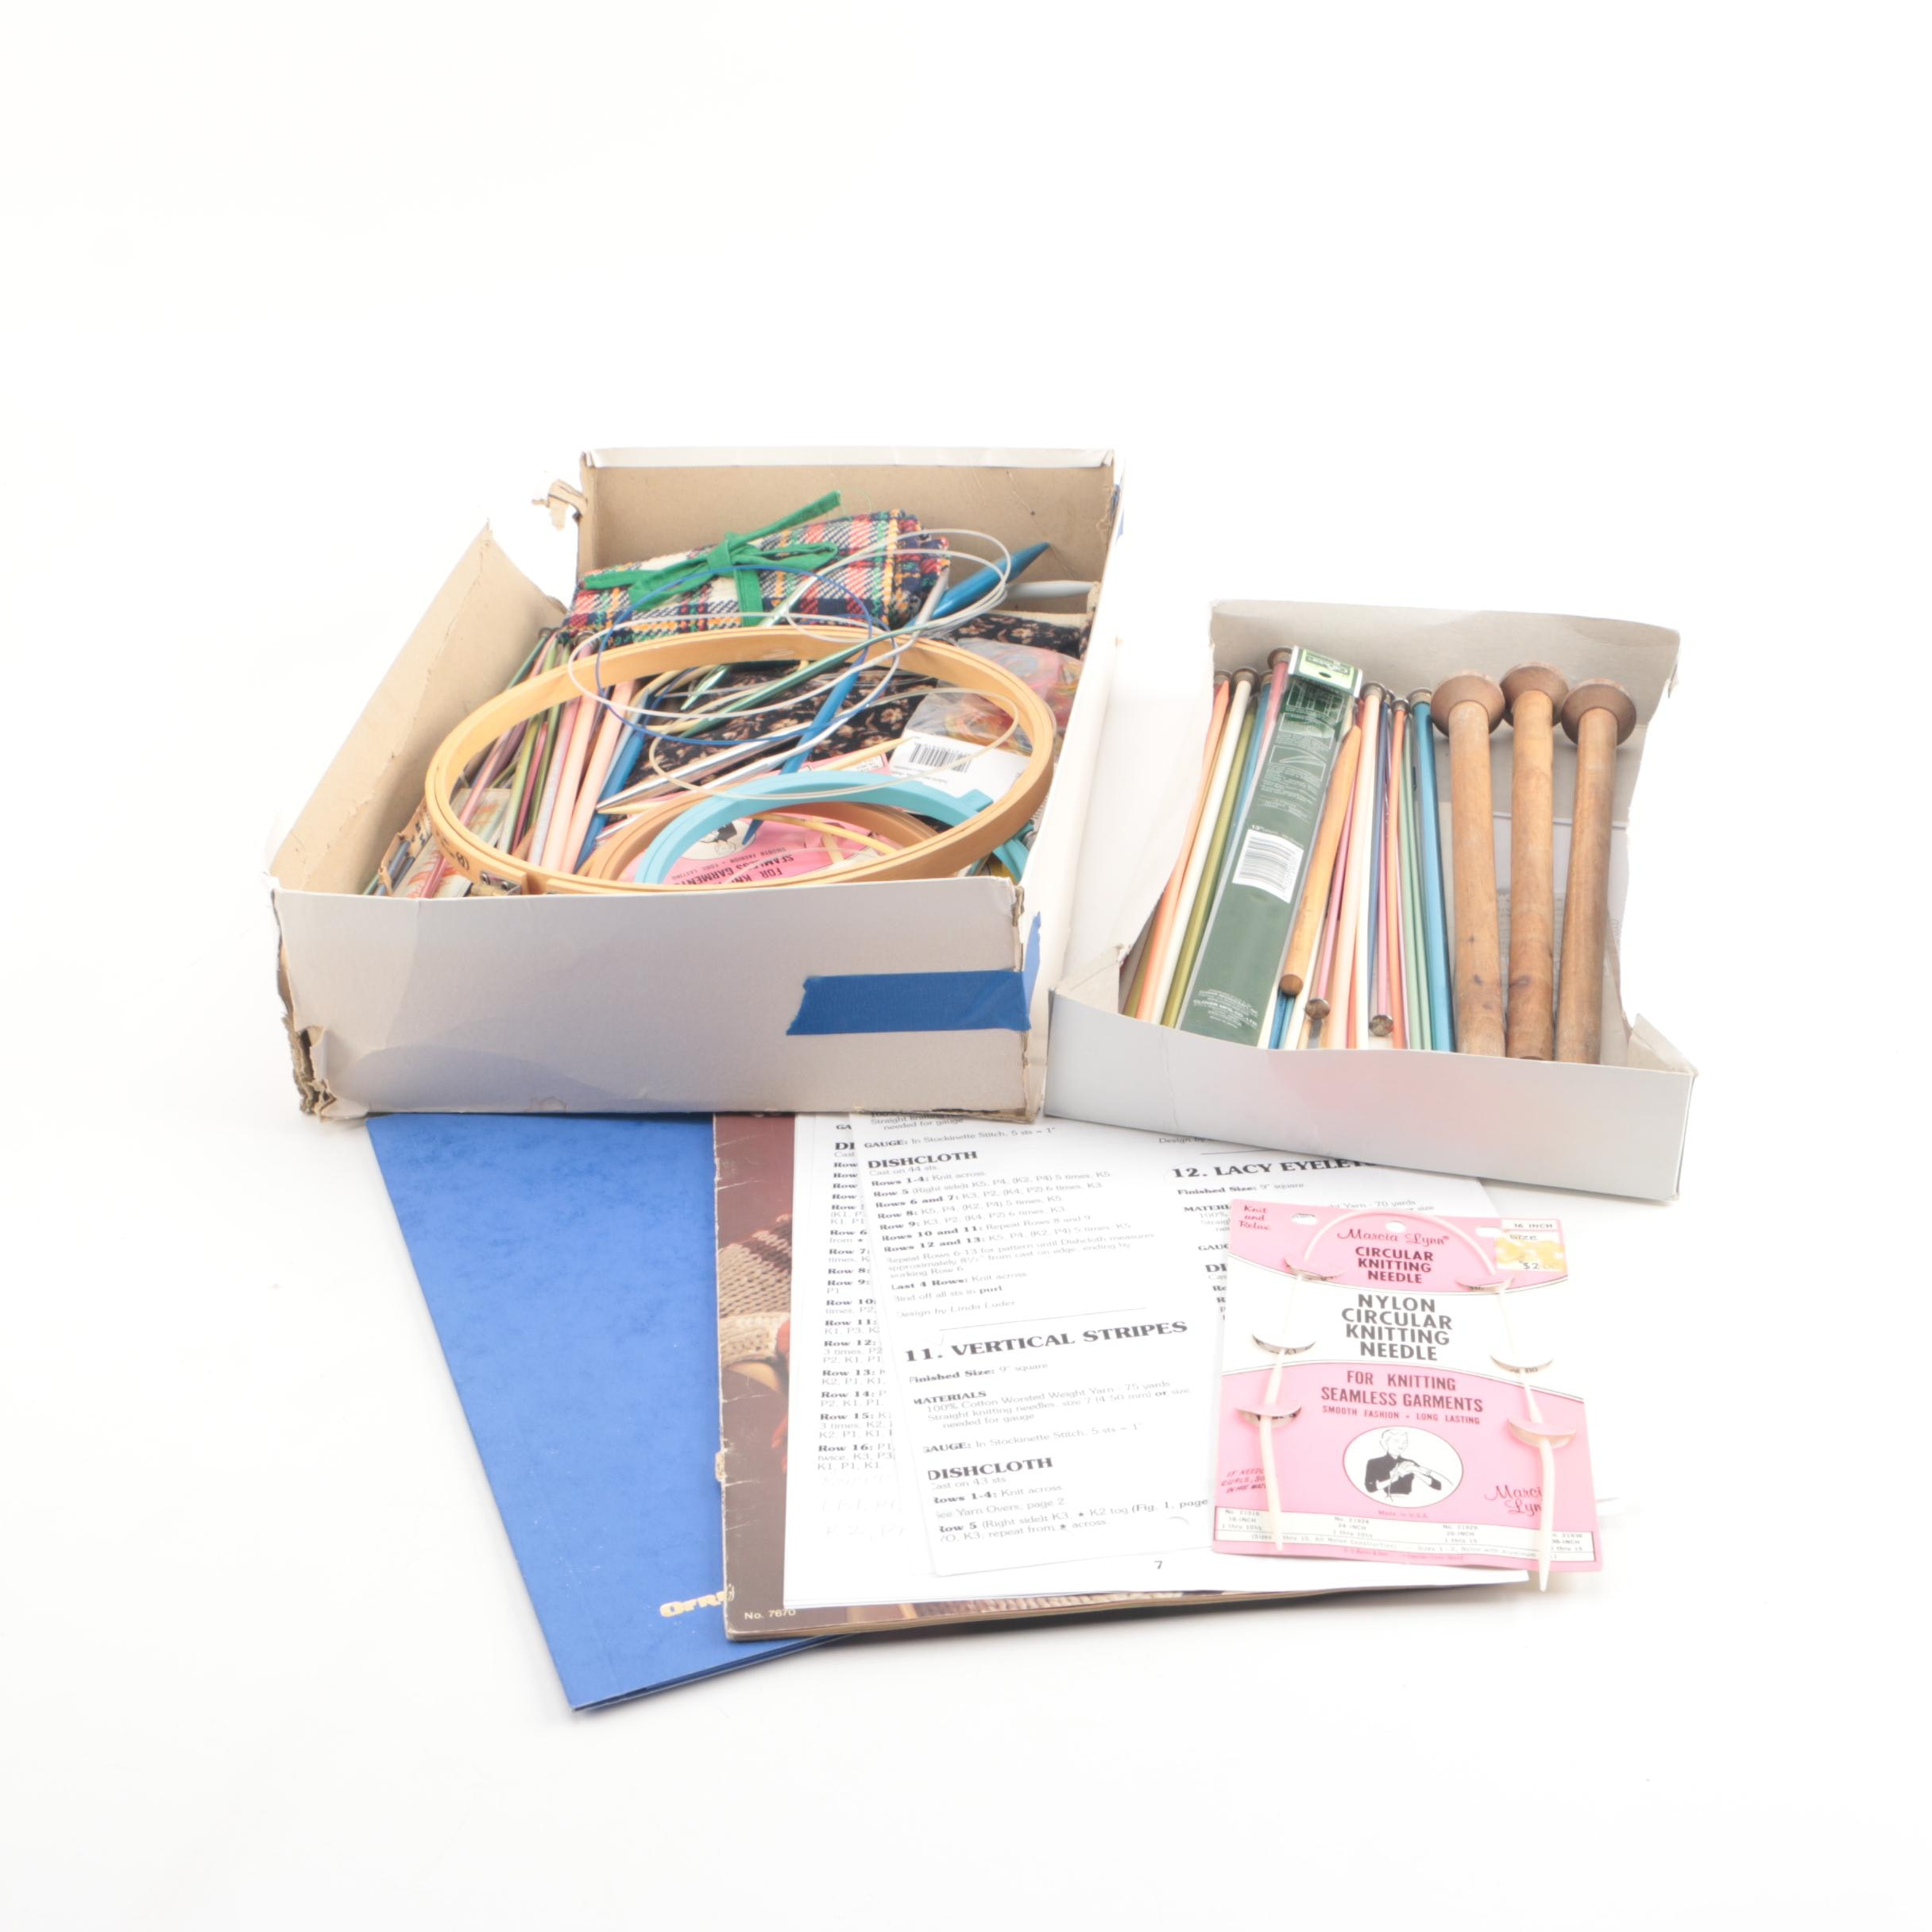 Knitting Supplies, Including Straight and Circular Knitting Needles